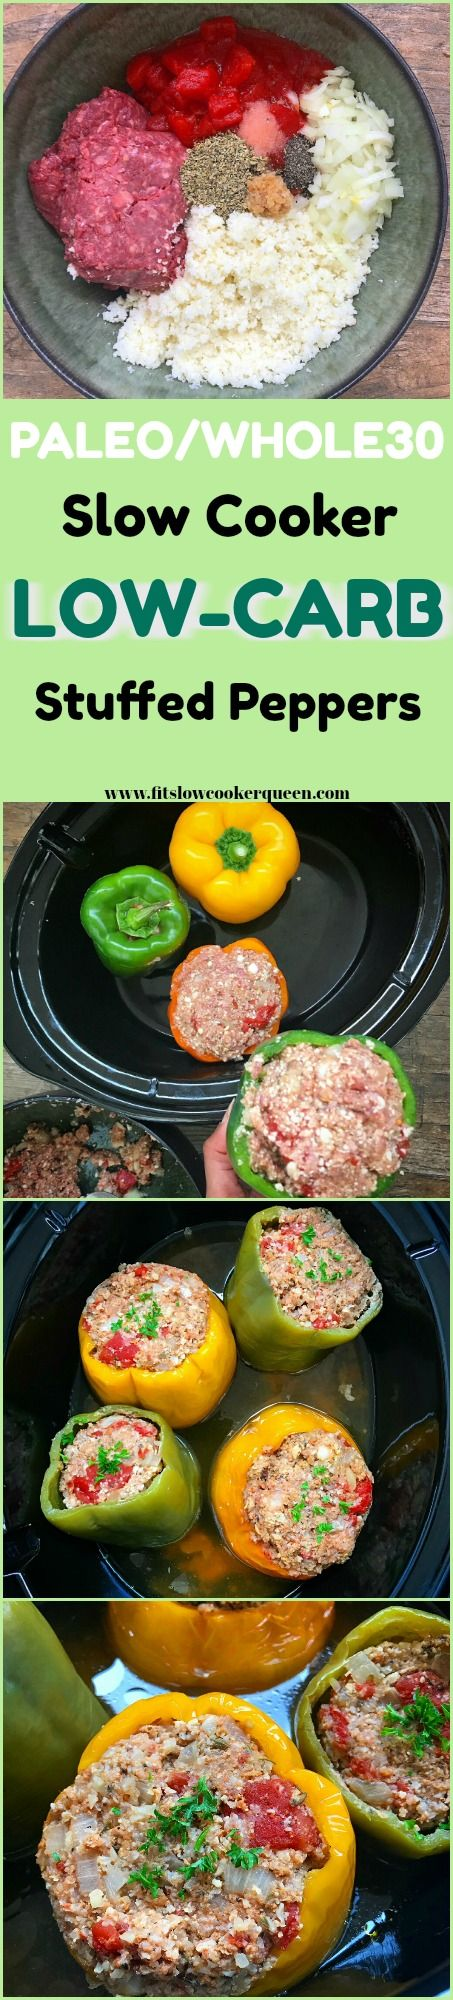 slow cooker crockpot whole30 paleo low carb - Using cauliflower rice, these slow cooker stuffed peppers are not only low-carb but also paleo and whole30. This recipe is not only healthy but easy too.